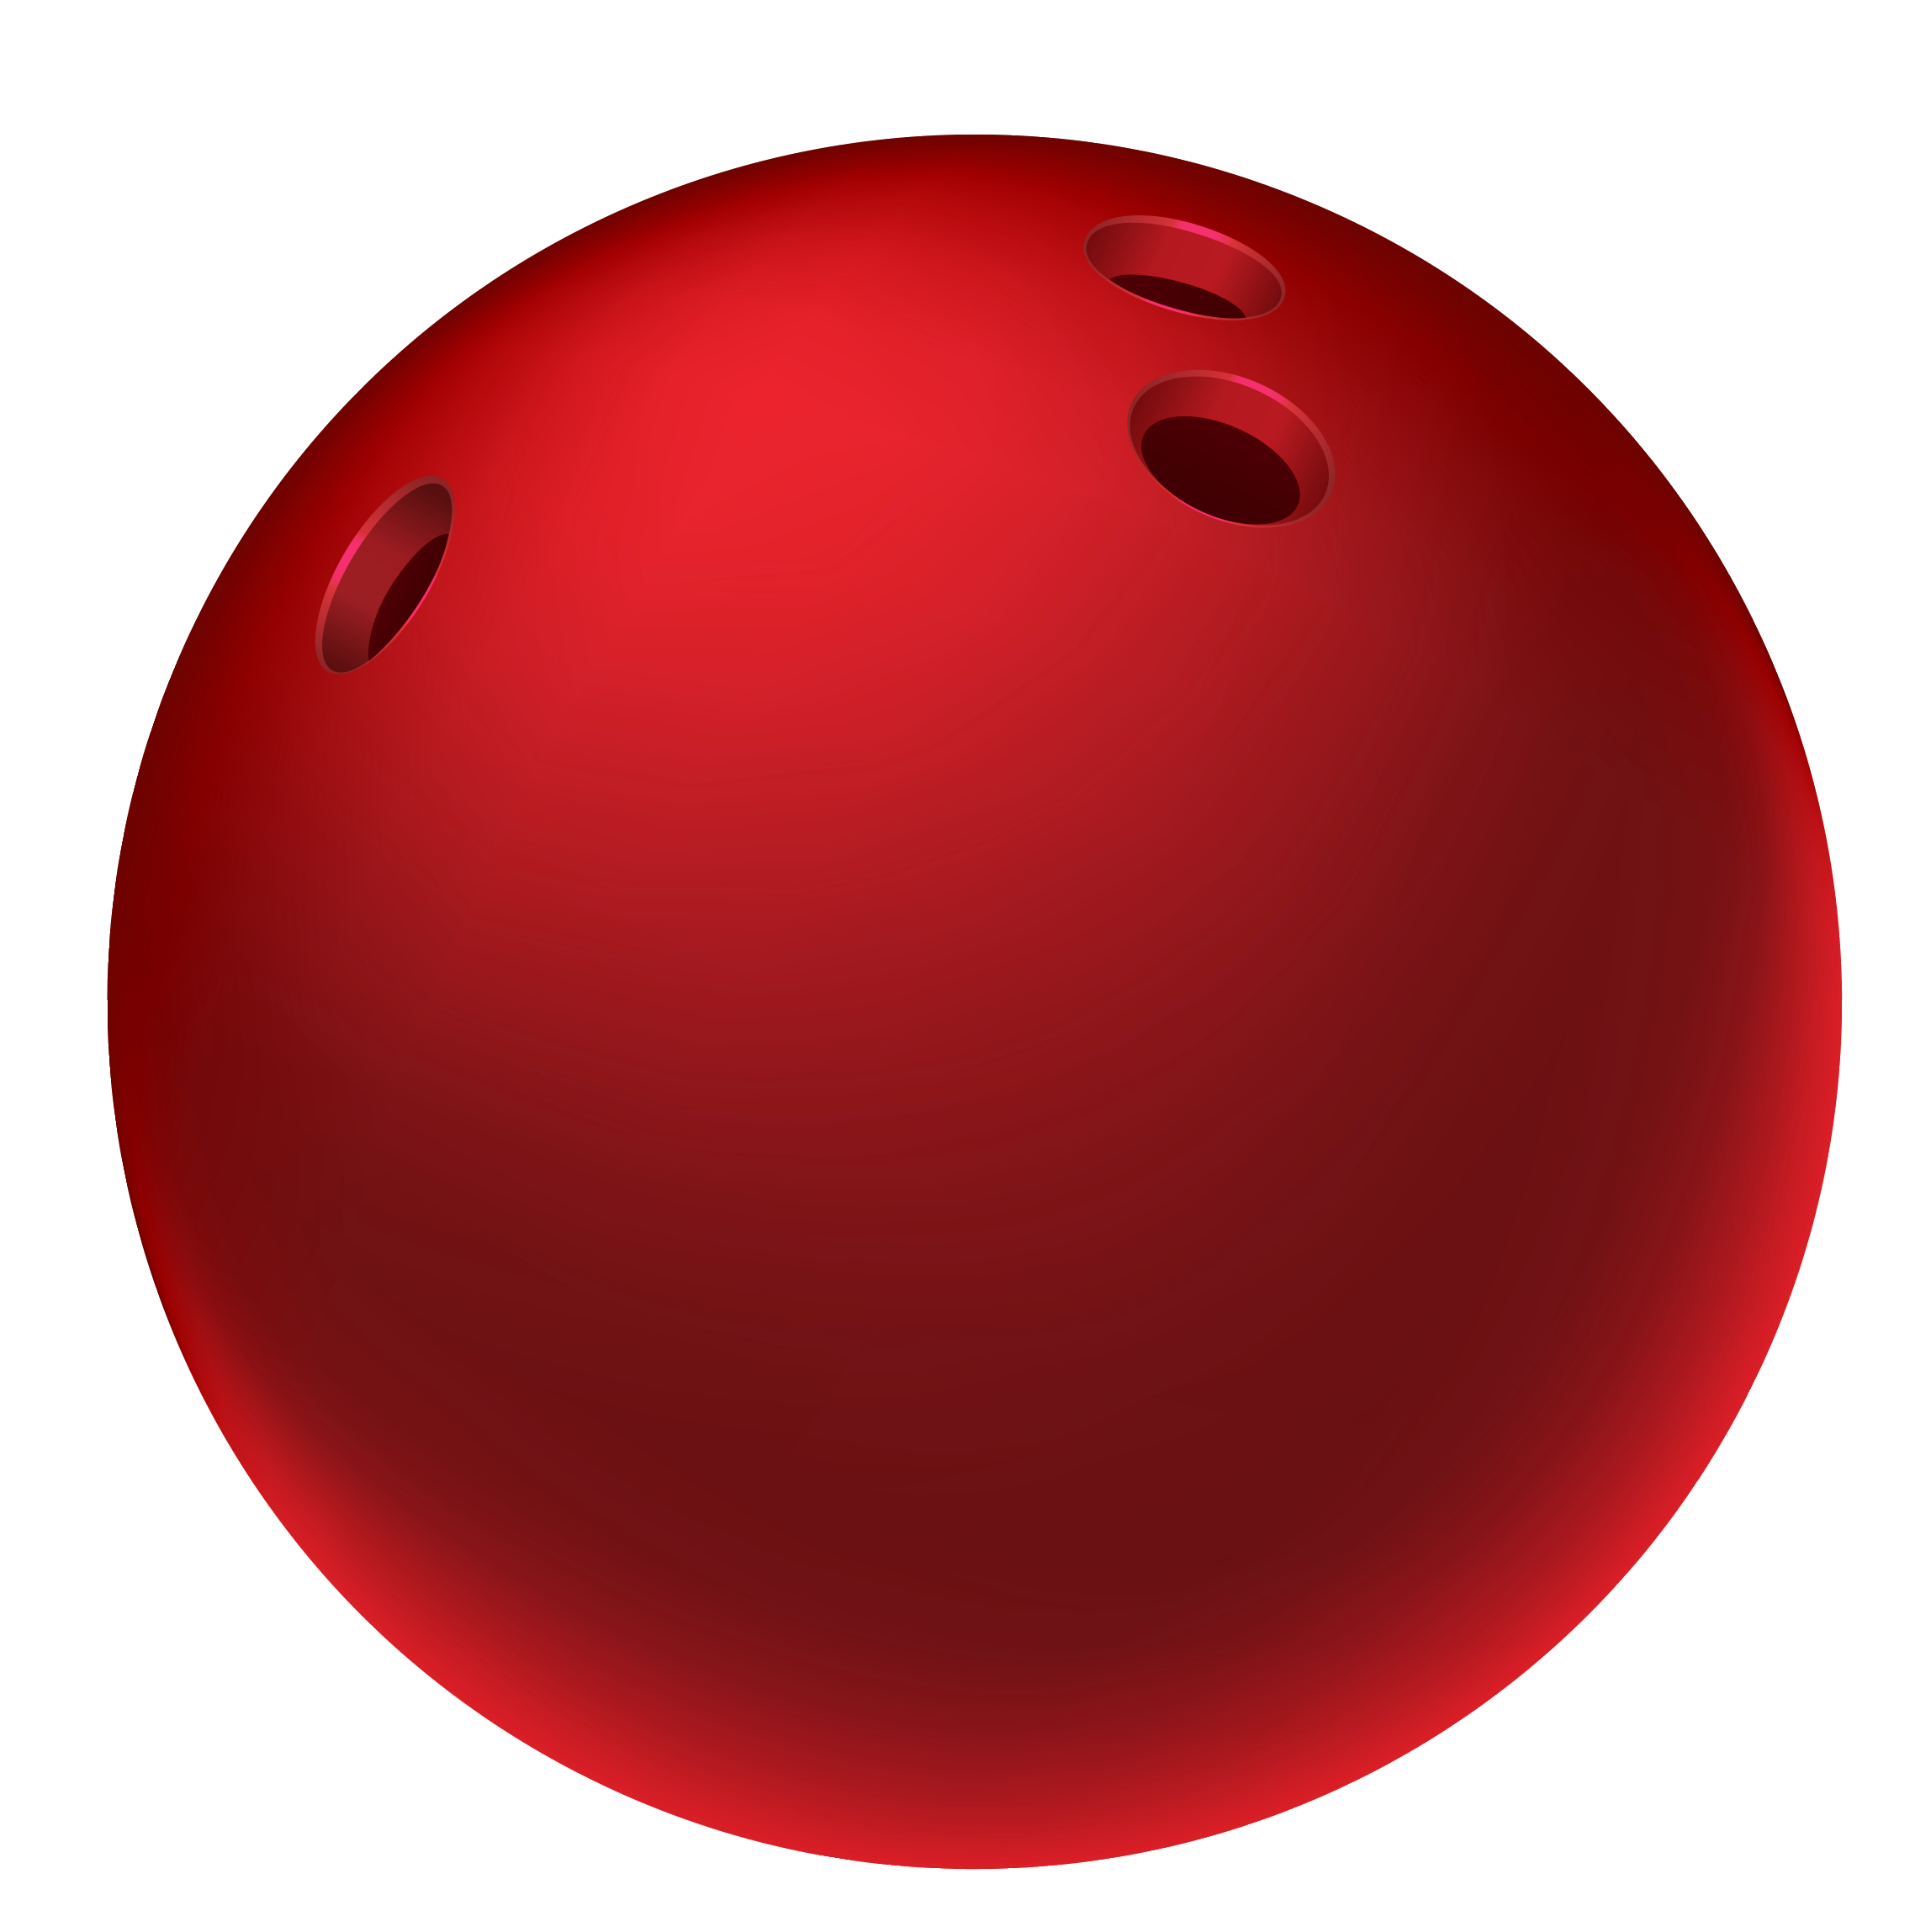 red bowling ball images download 9010